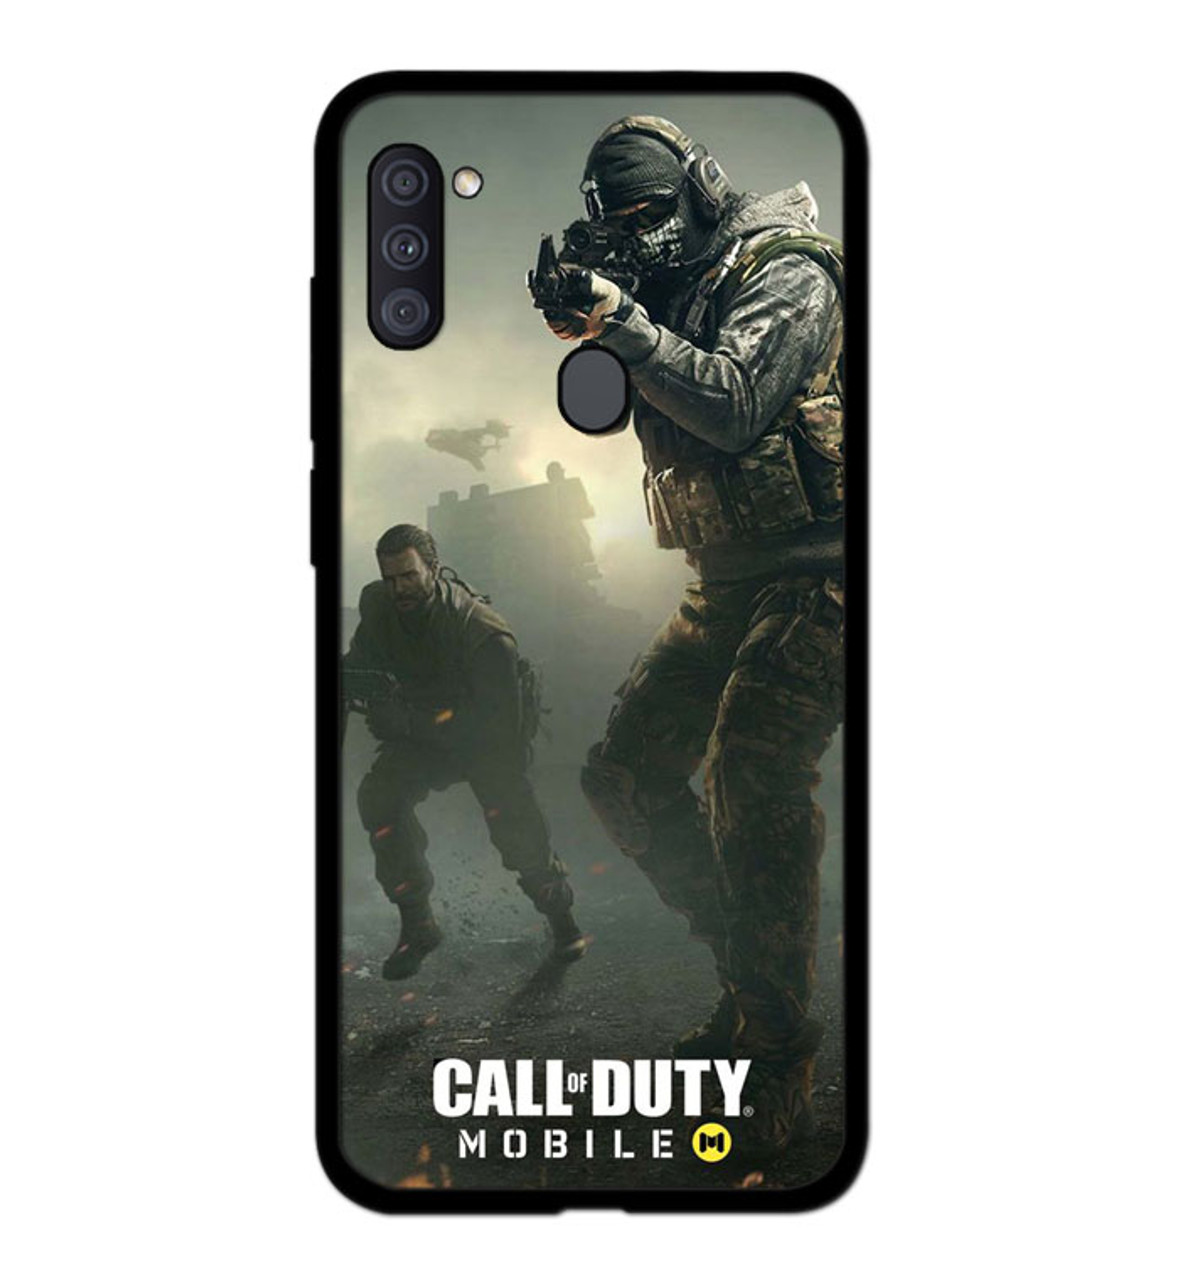 Cod Mobile Wallpaper Q0312 Samsung Galaxy A11 Case Flazzy Store